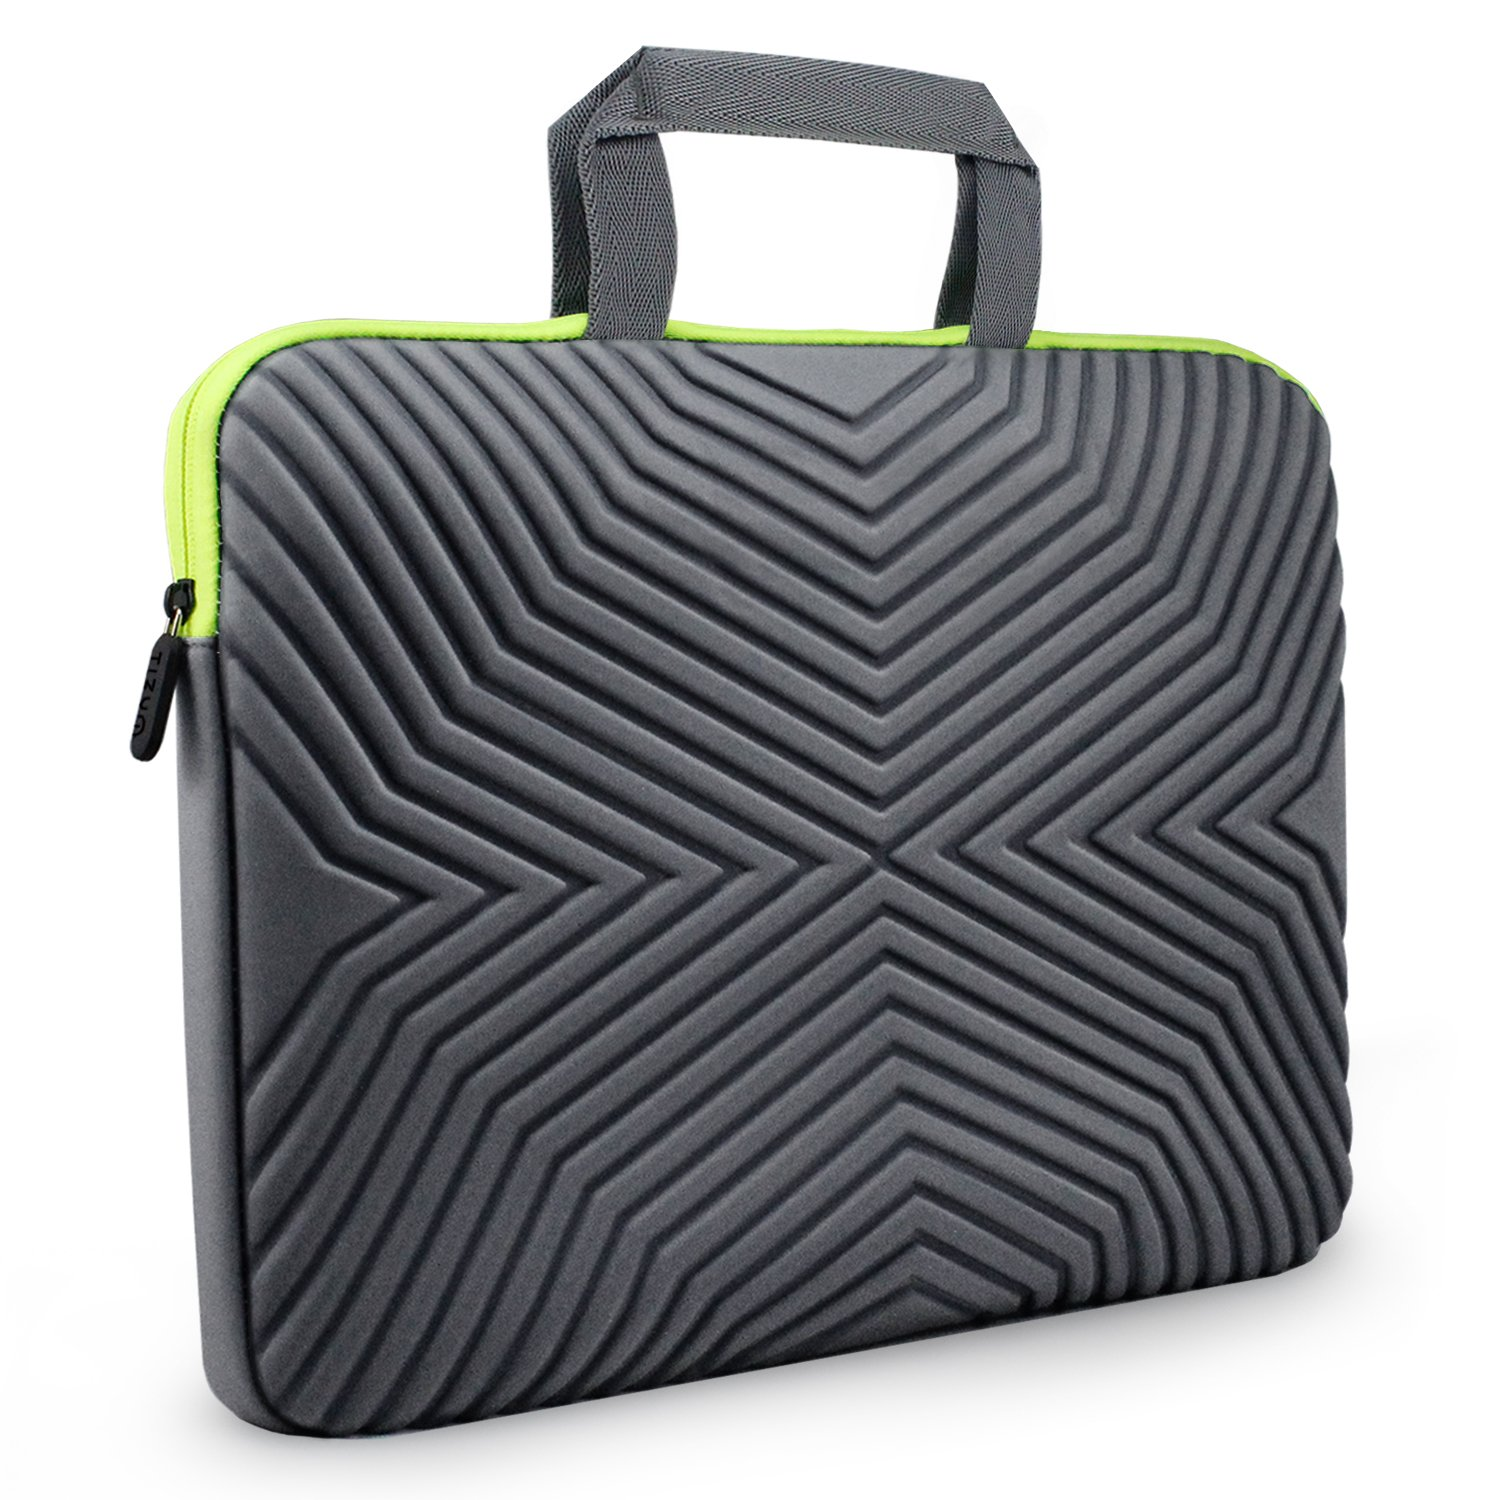 Tizum Laptop Bag Sleeve Case Cover for 15/15.6-Inch Laptop